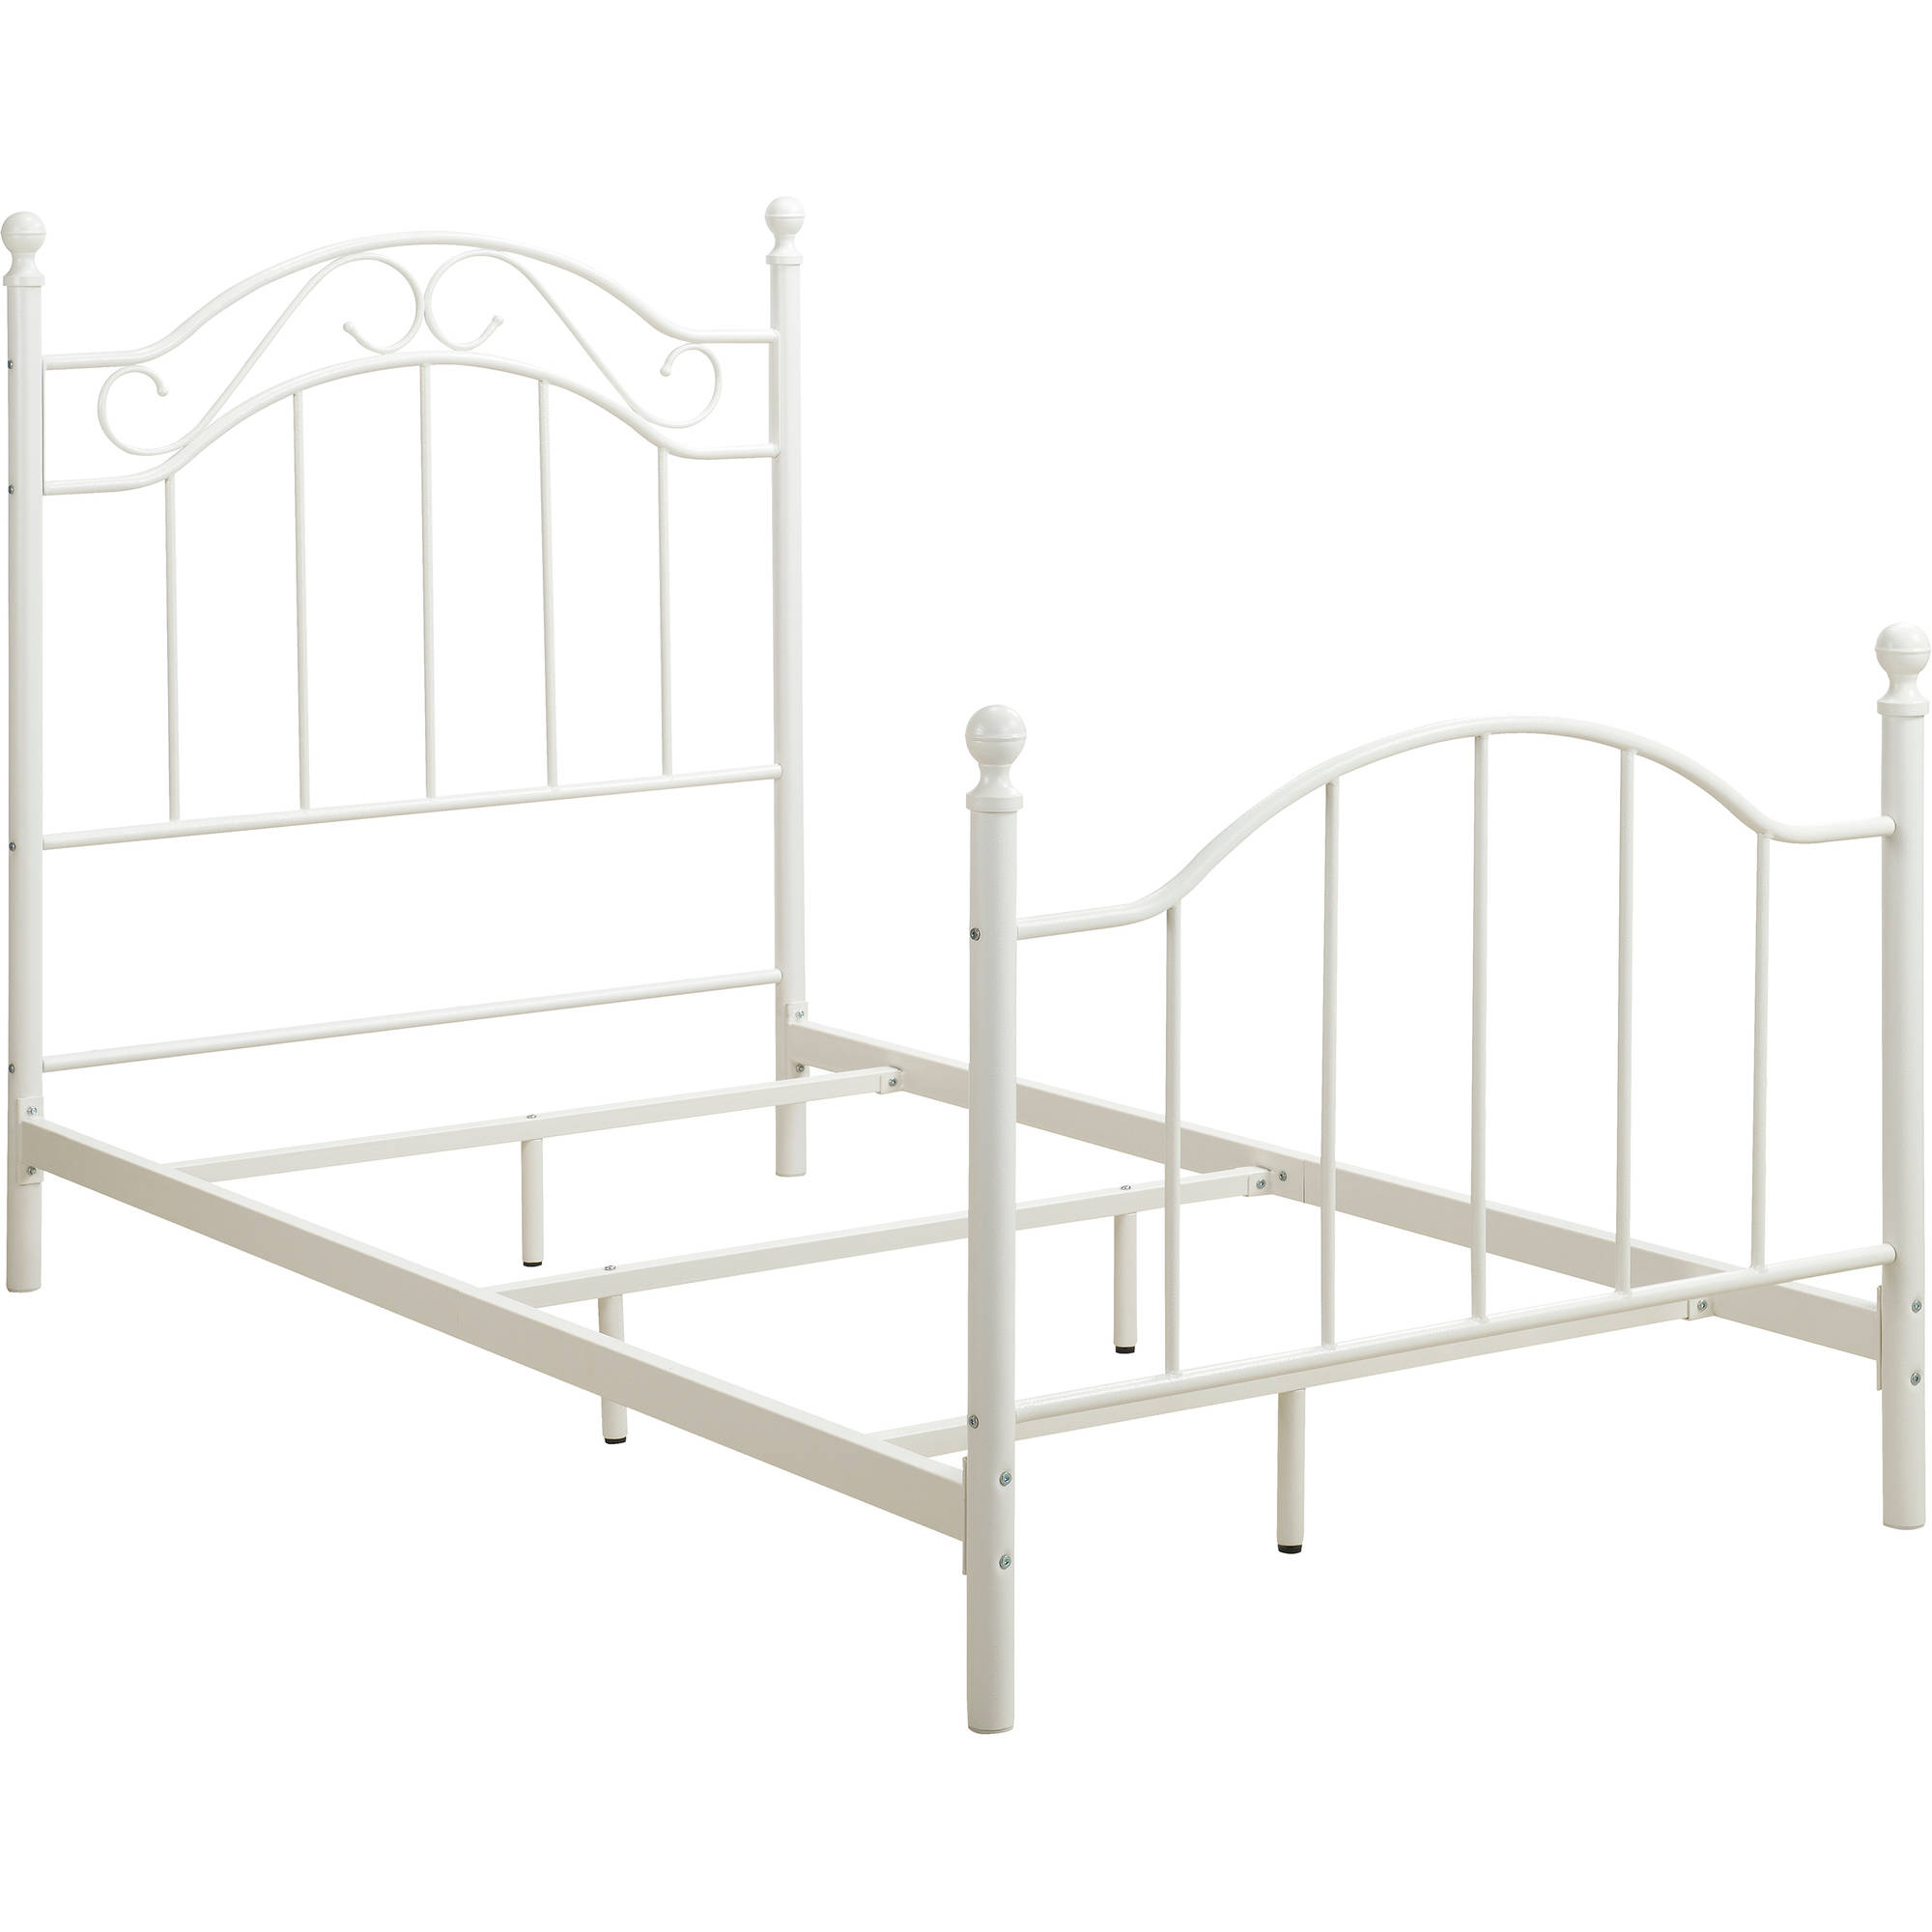 Simple Twin Metal Bed Frame Plans Free